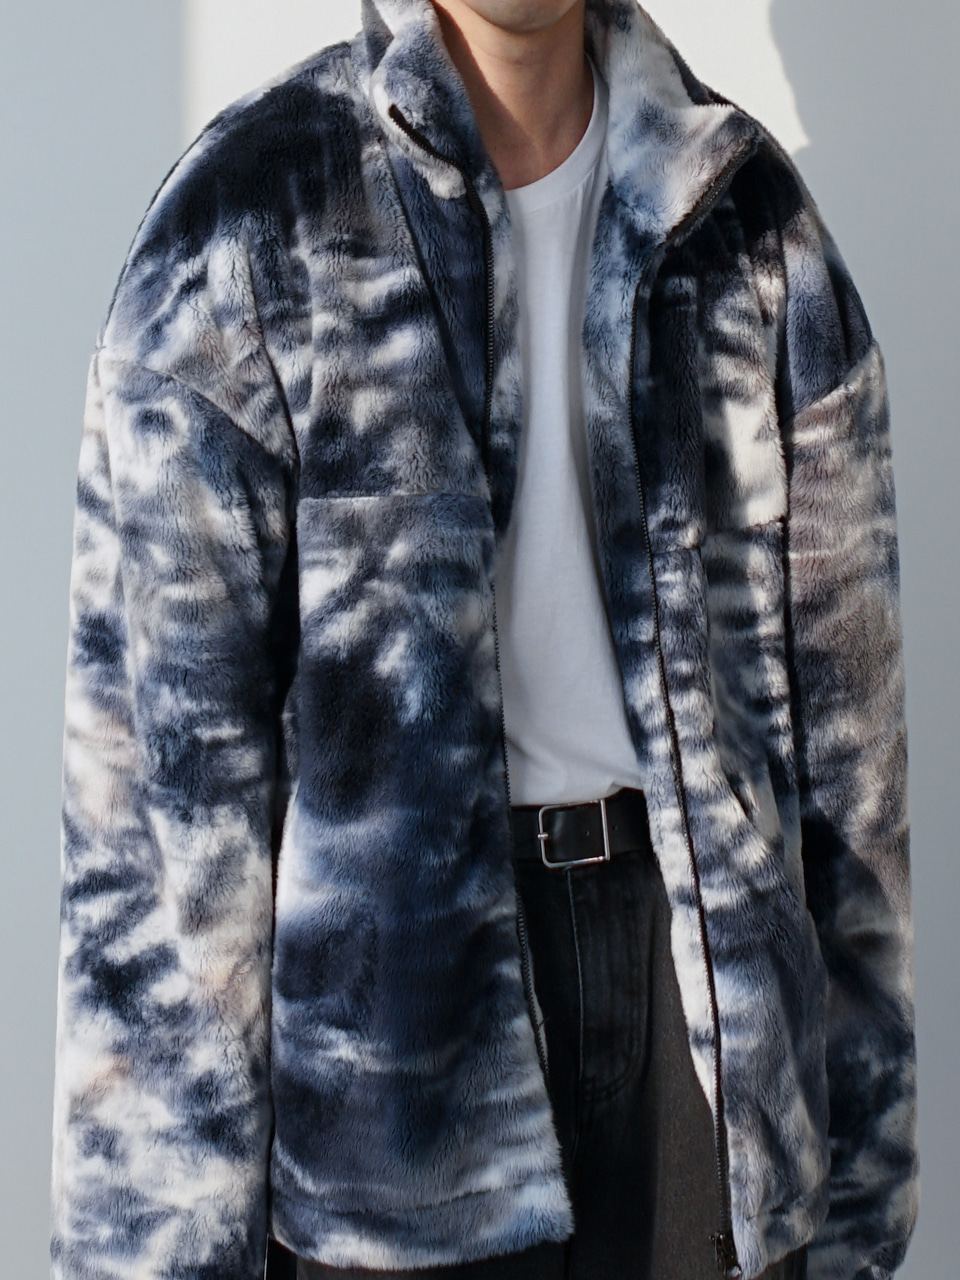 Webster Patterned Fur Jacket (2color)